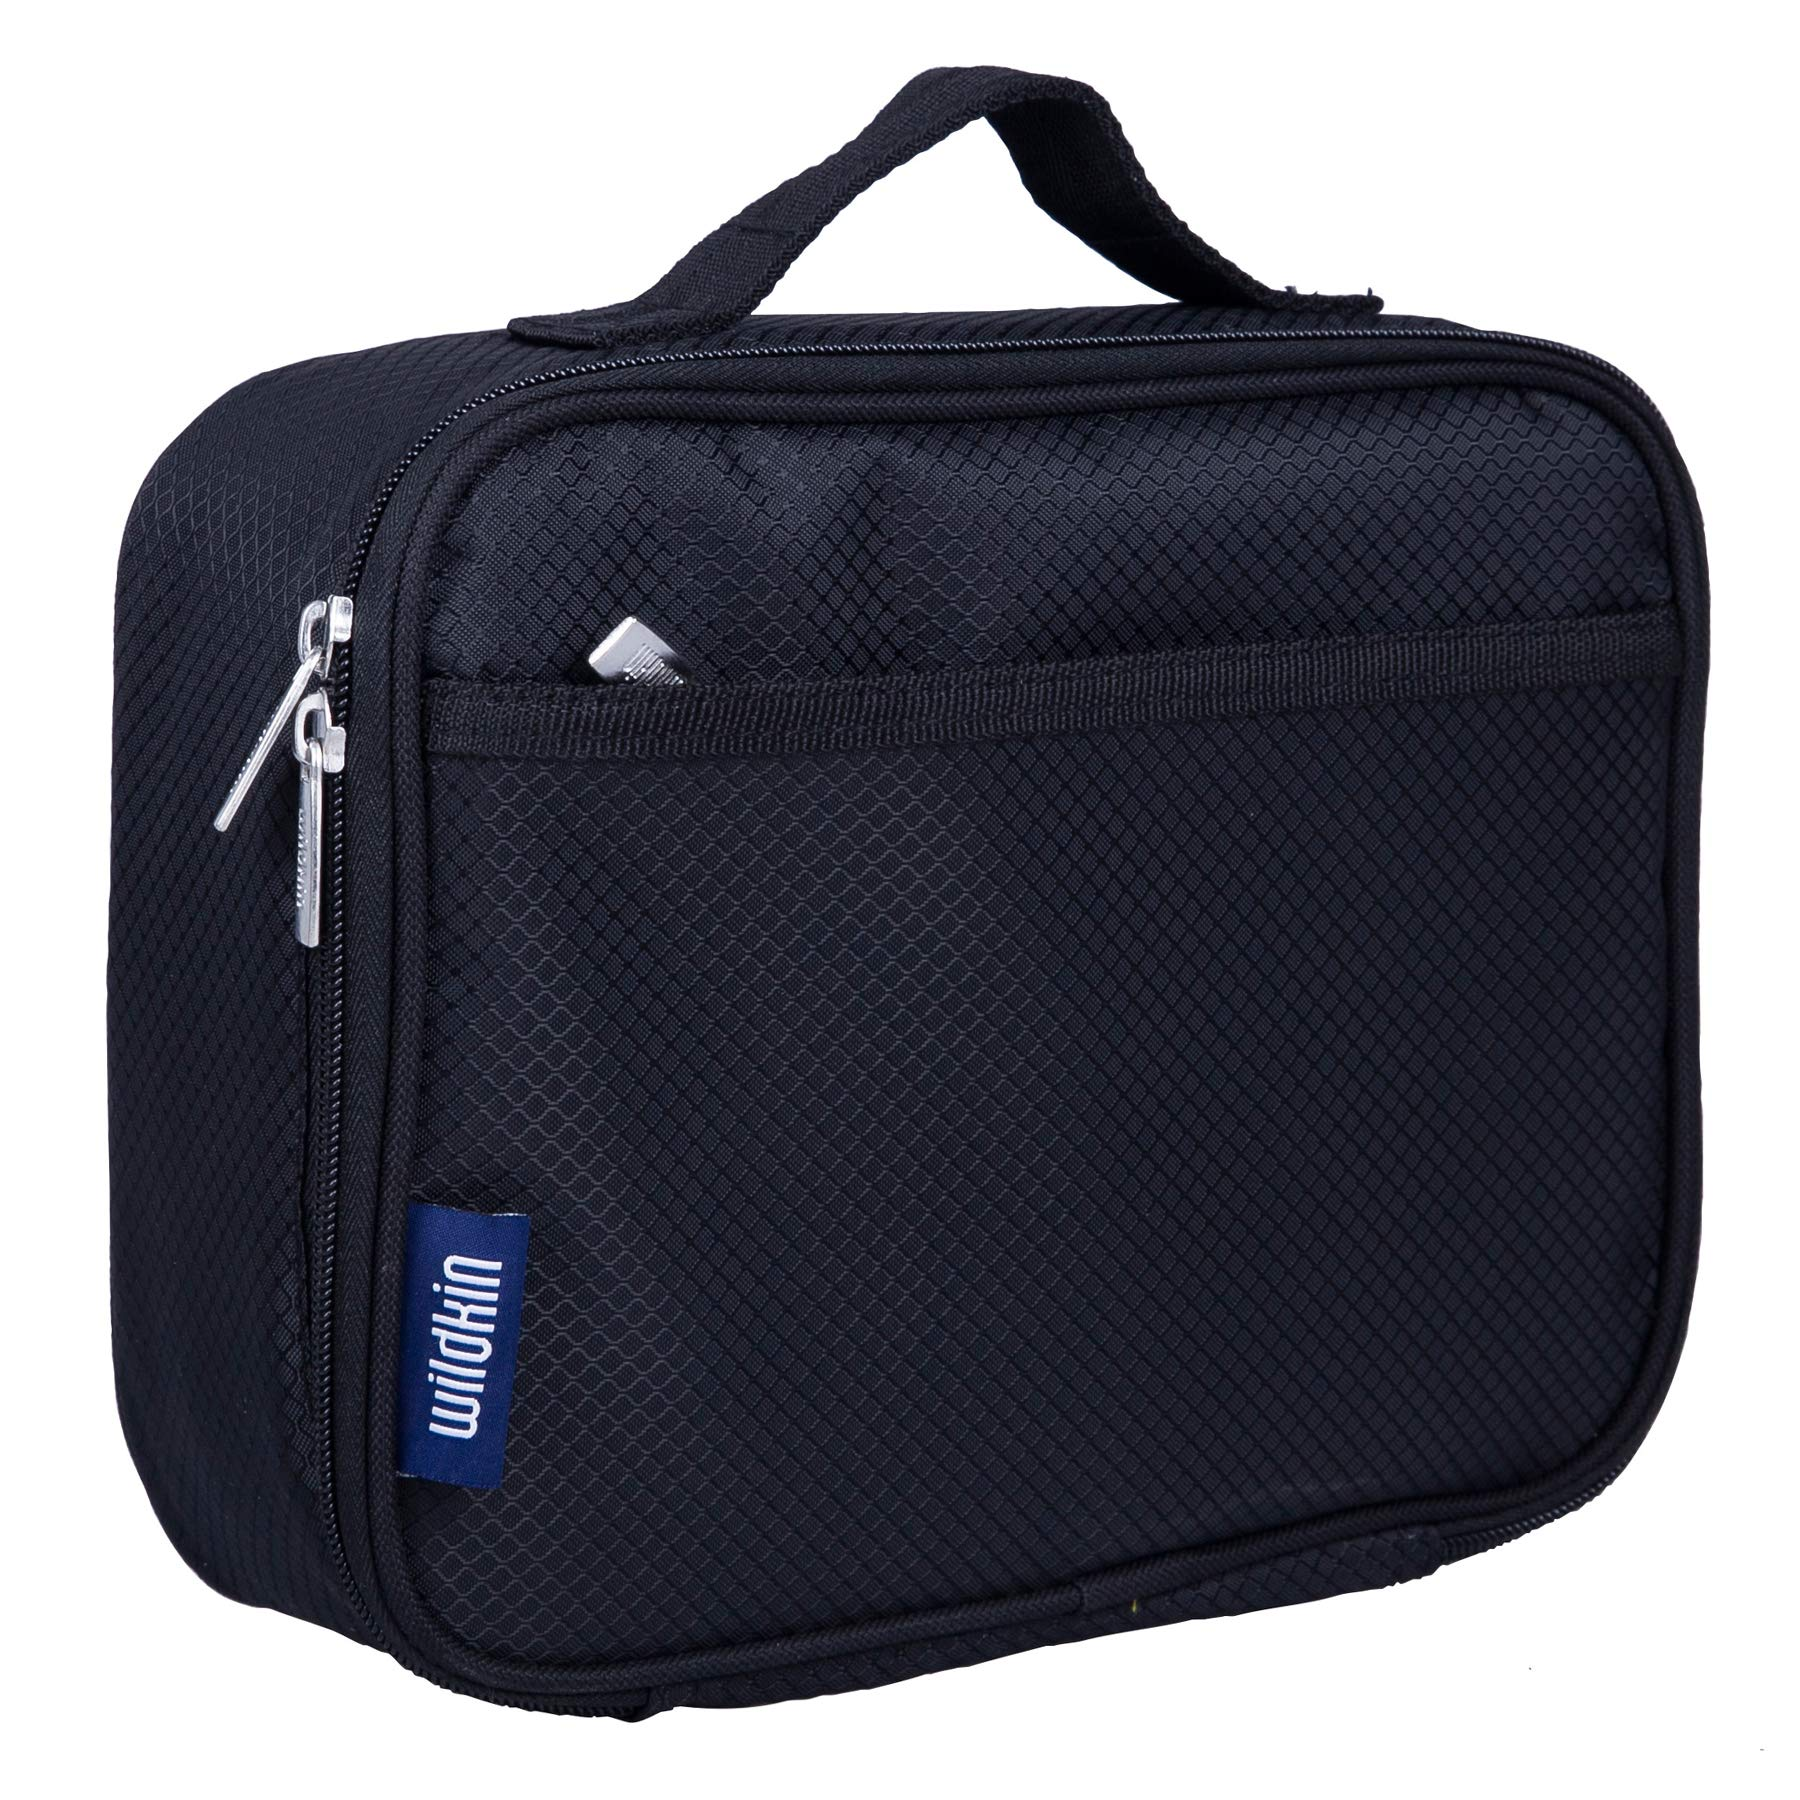 Lunch Box, Wildkin Lunch Box, Insulated, Moisture Resistant, and Easy to Clean with Helpful Extras for Quick and Simple Organization, Ages 3+, Perfect for Kids or On-The-Go Parents – Rip-Stop Black